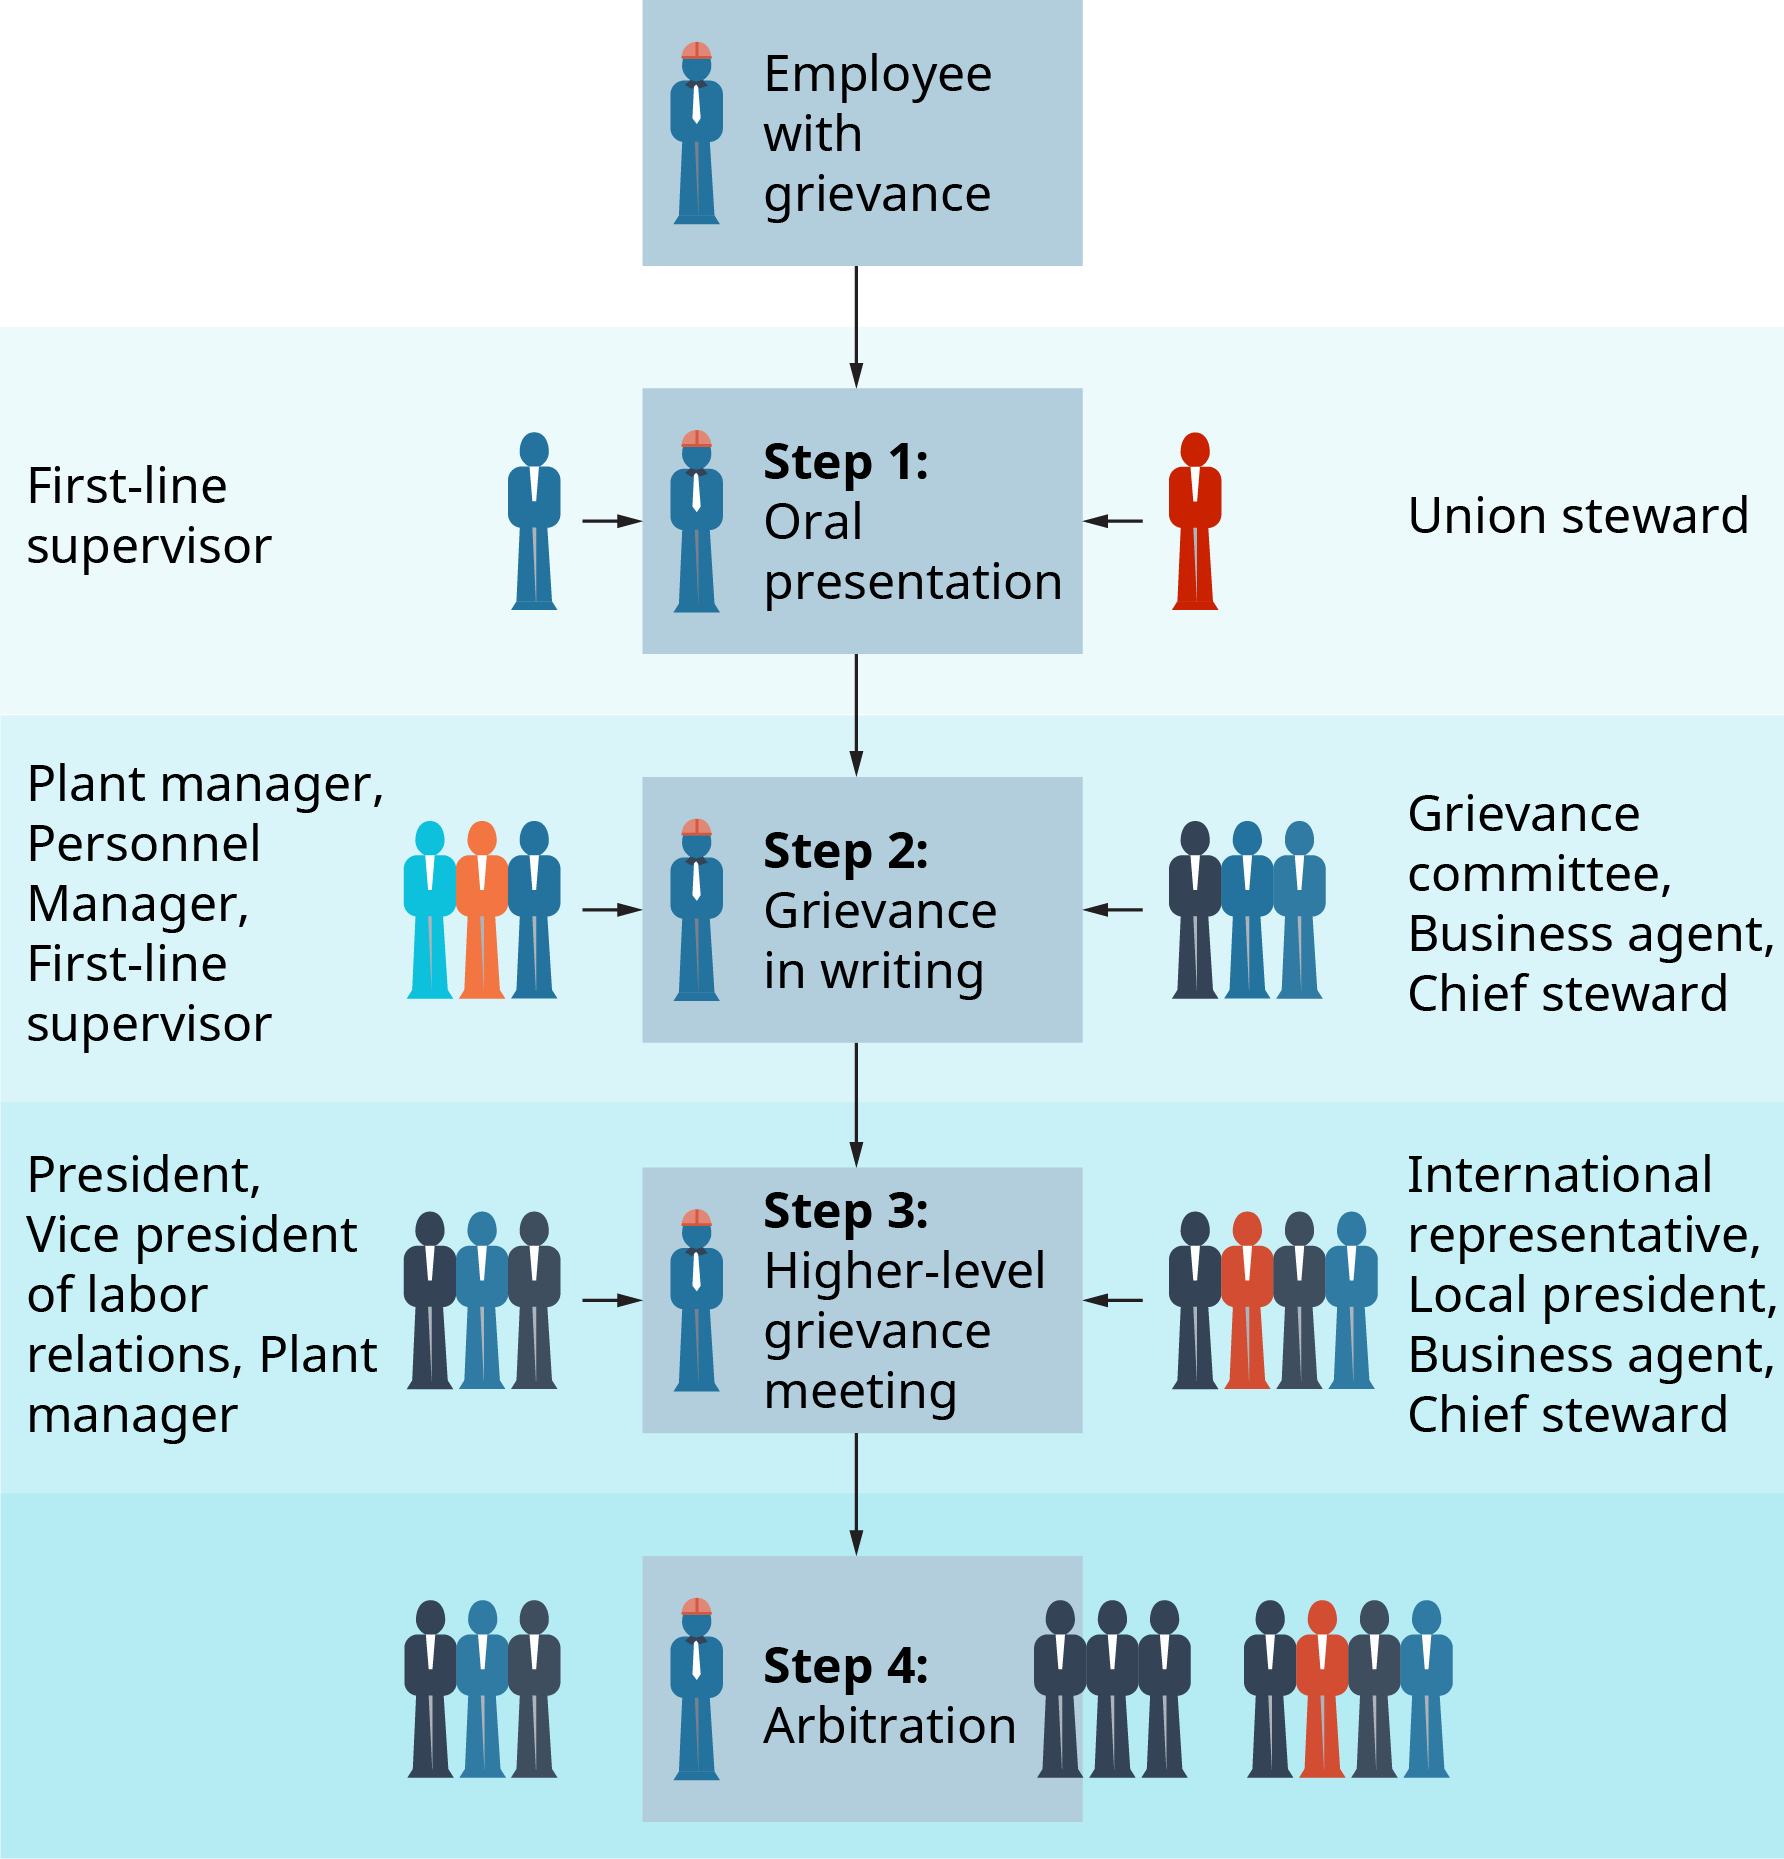 The diagram starts with an employee with a grievance. Step 1 is an oral presentation between the first line supervisor, and the union steward. Step 2 is grievance in writing. On one side is the plant manager, personnel manager, and first line supervisor. On the opposite side is the grievance committee, business agent, and Chief steward. Step 3 is a higher level grievance meeting. On one side is the president, vice president of labor relations, and the plant manager. On the opposite side is the international representative, local president, business agent, and chief steward. Step 4 is arbitration.